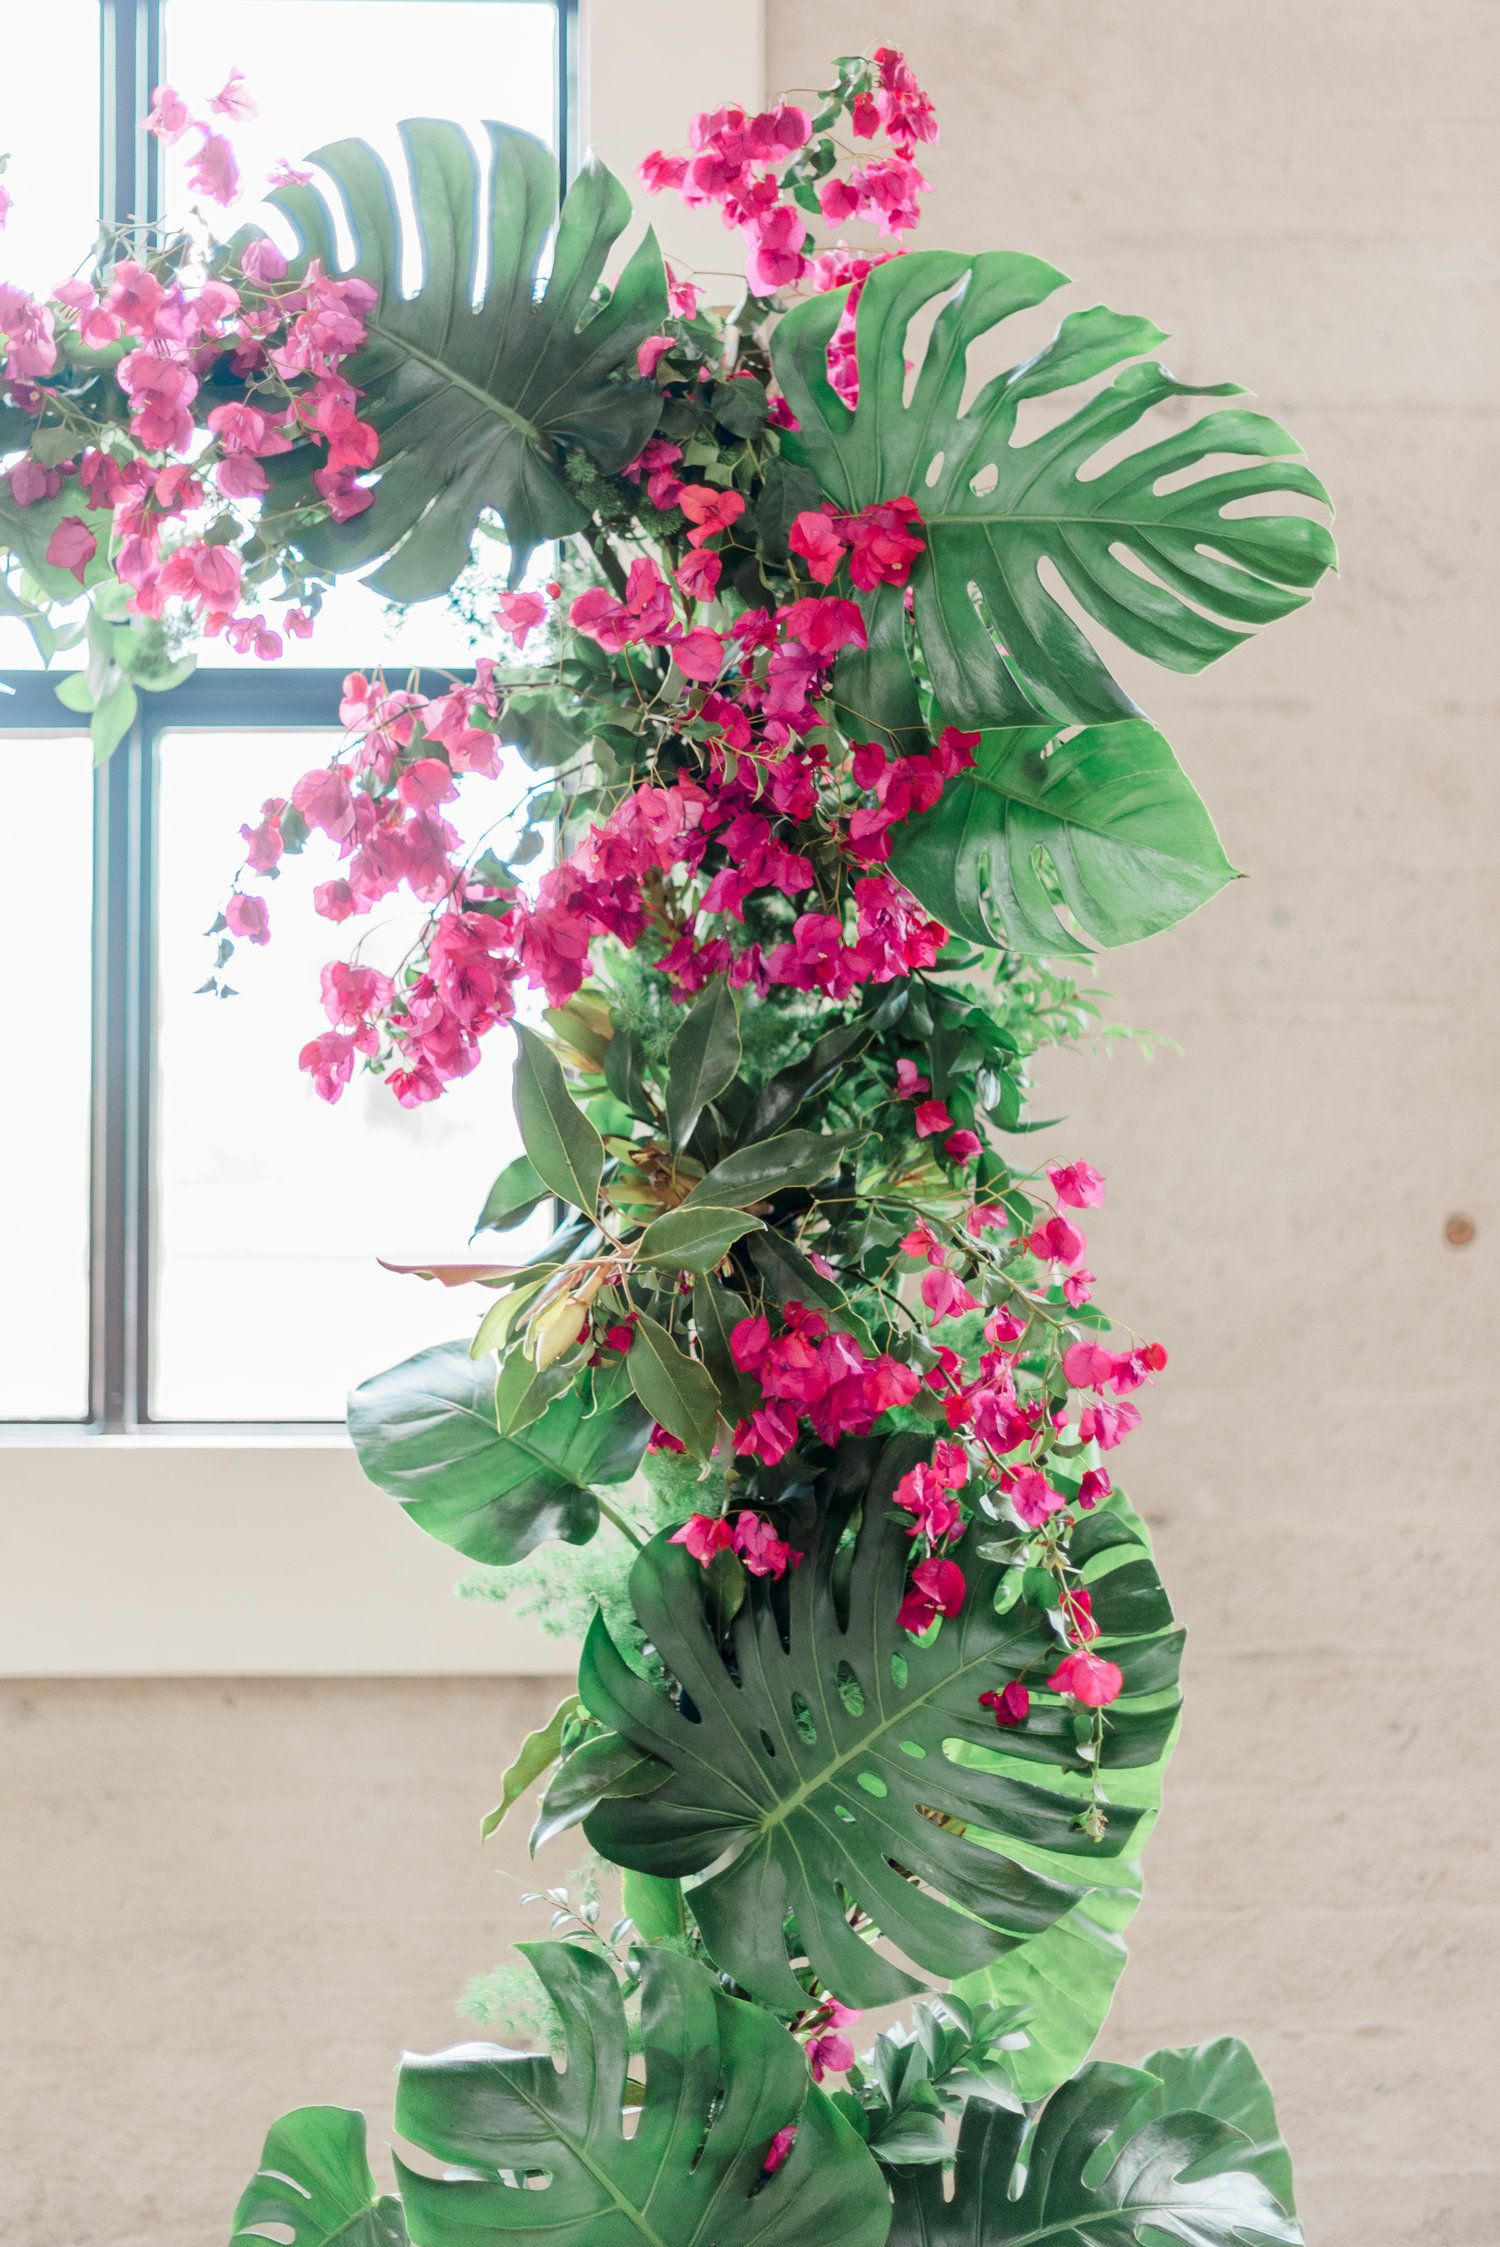 Modern wedding decor images  g  결혼식 참고요ㅇ  Pinterest  Tropical party Event